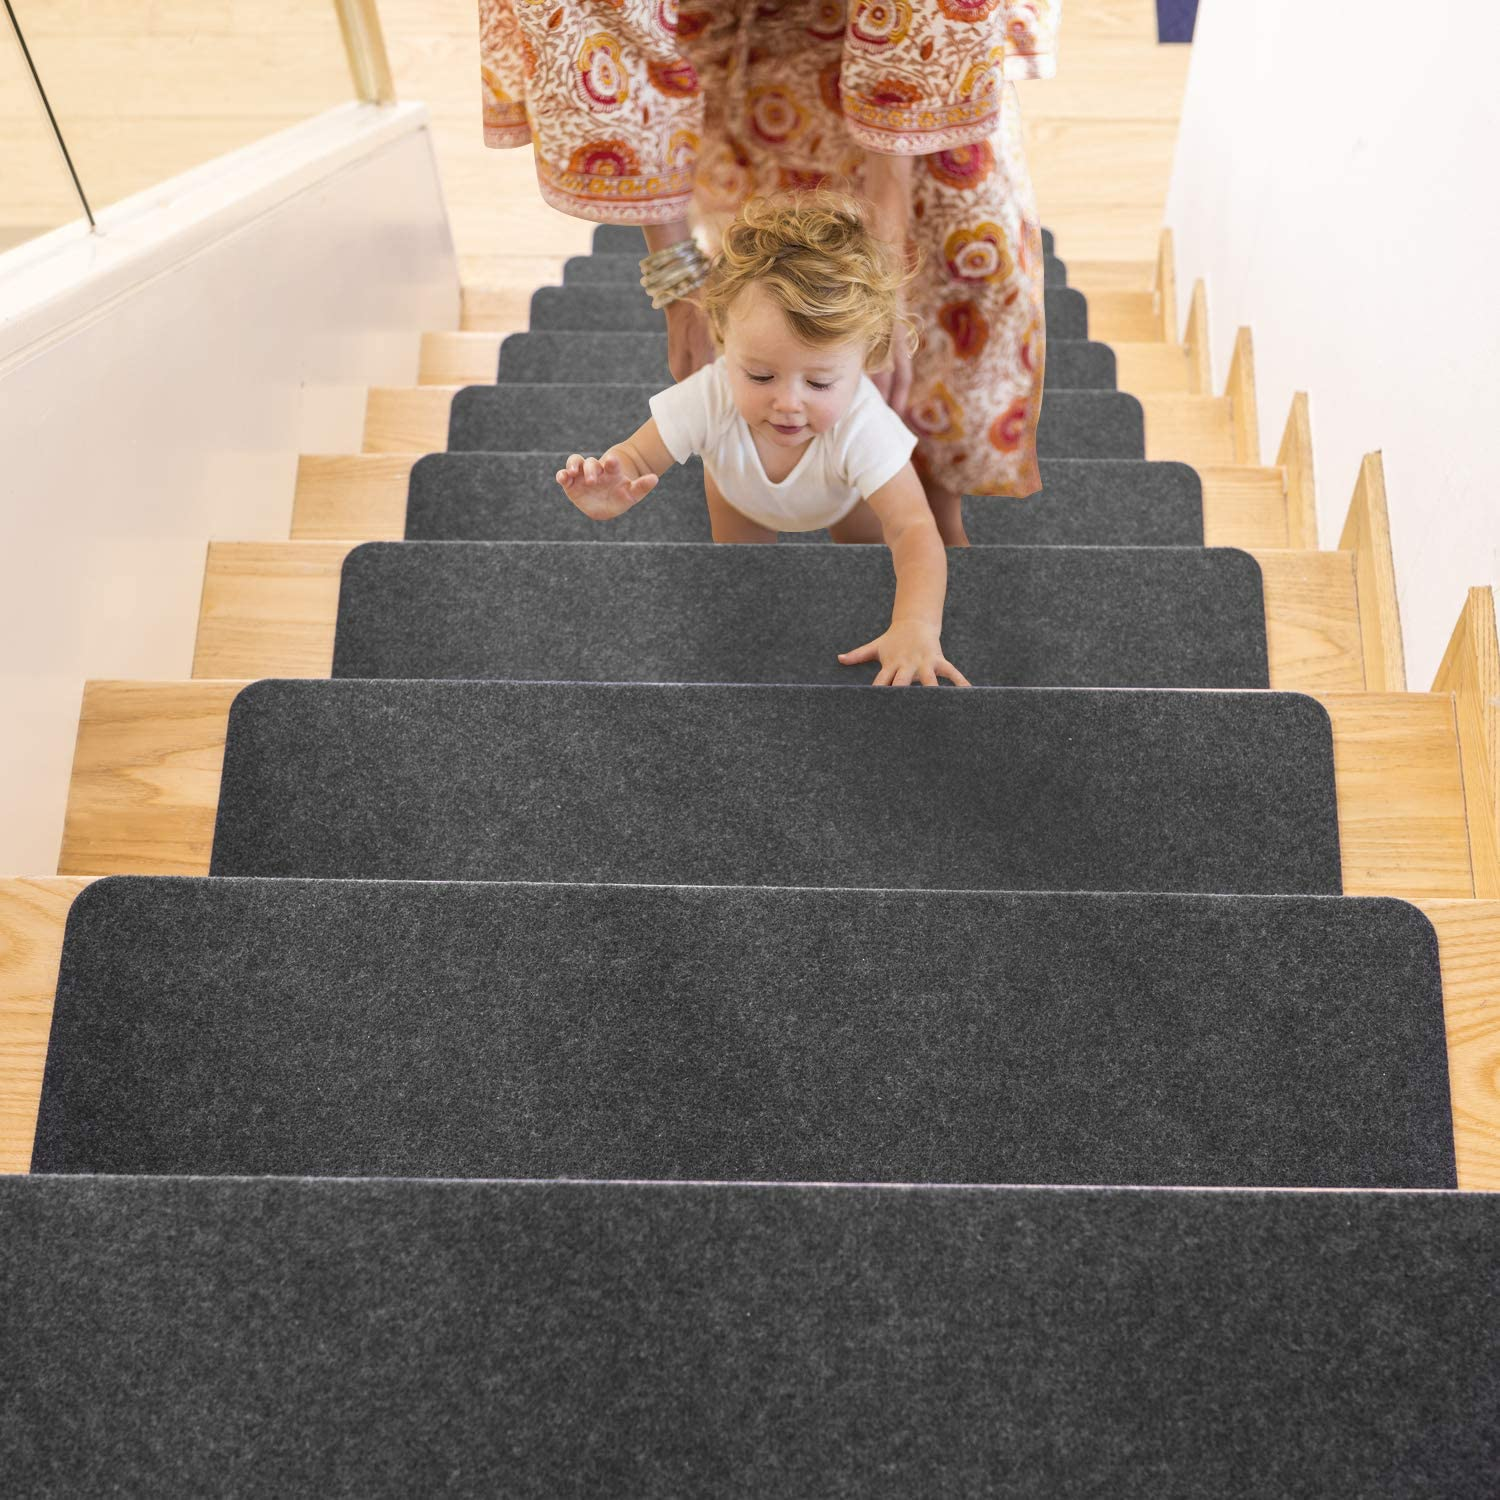 Stair Treads Carpet for Peel 14 Pack Max 46% OFF Wooden 40% OFF Cheap Sale